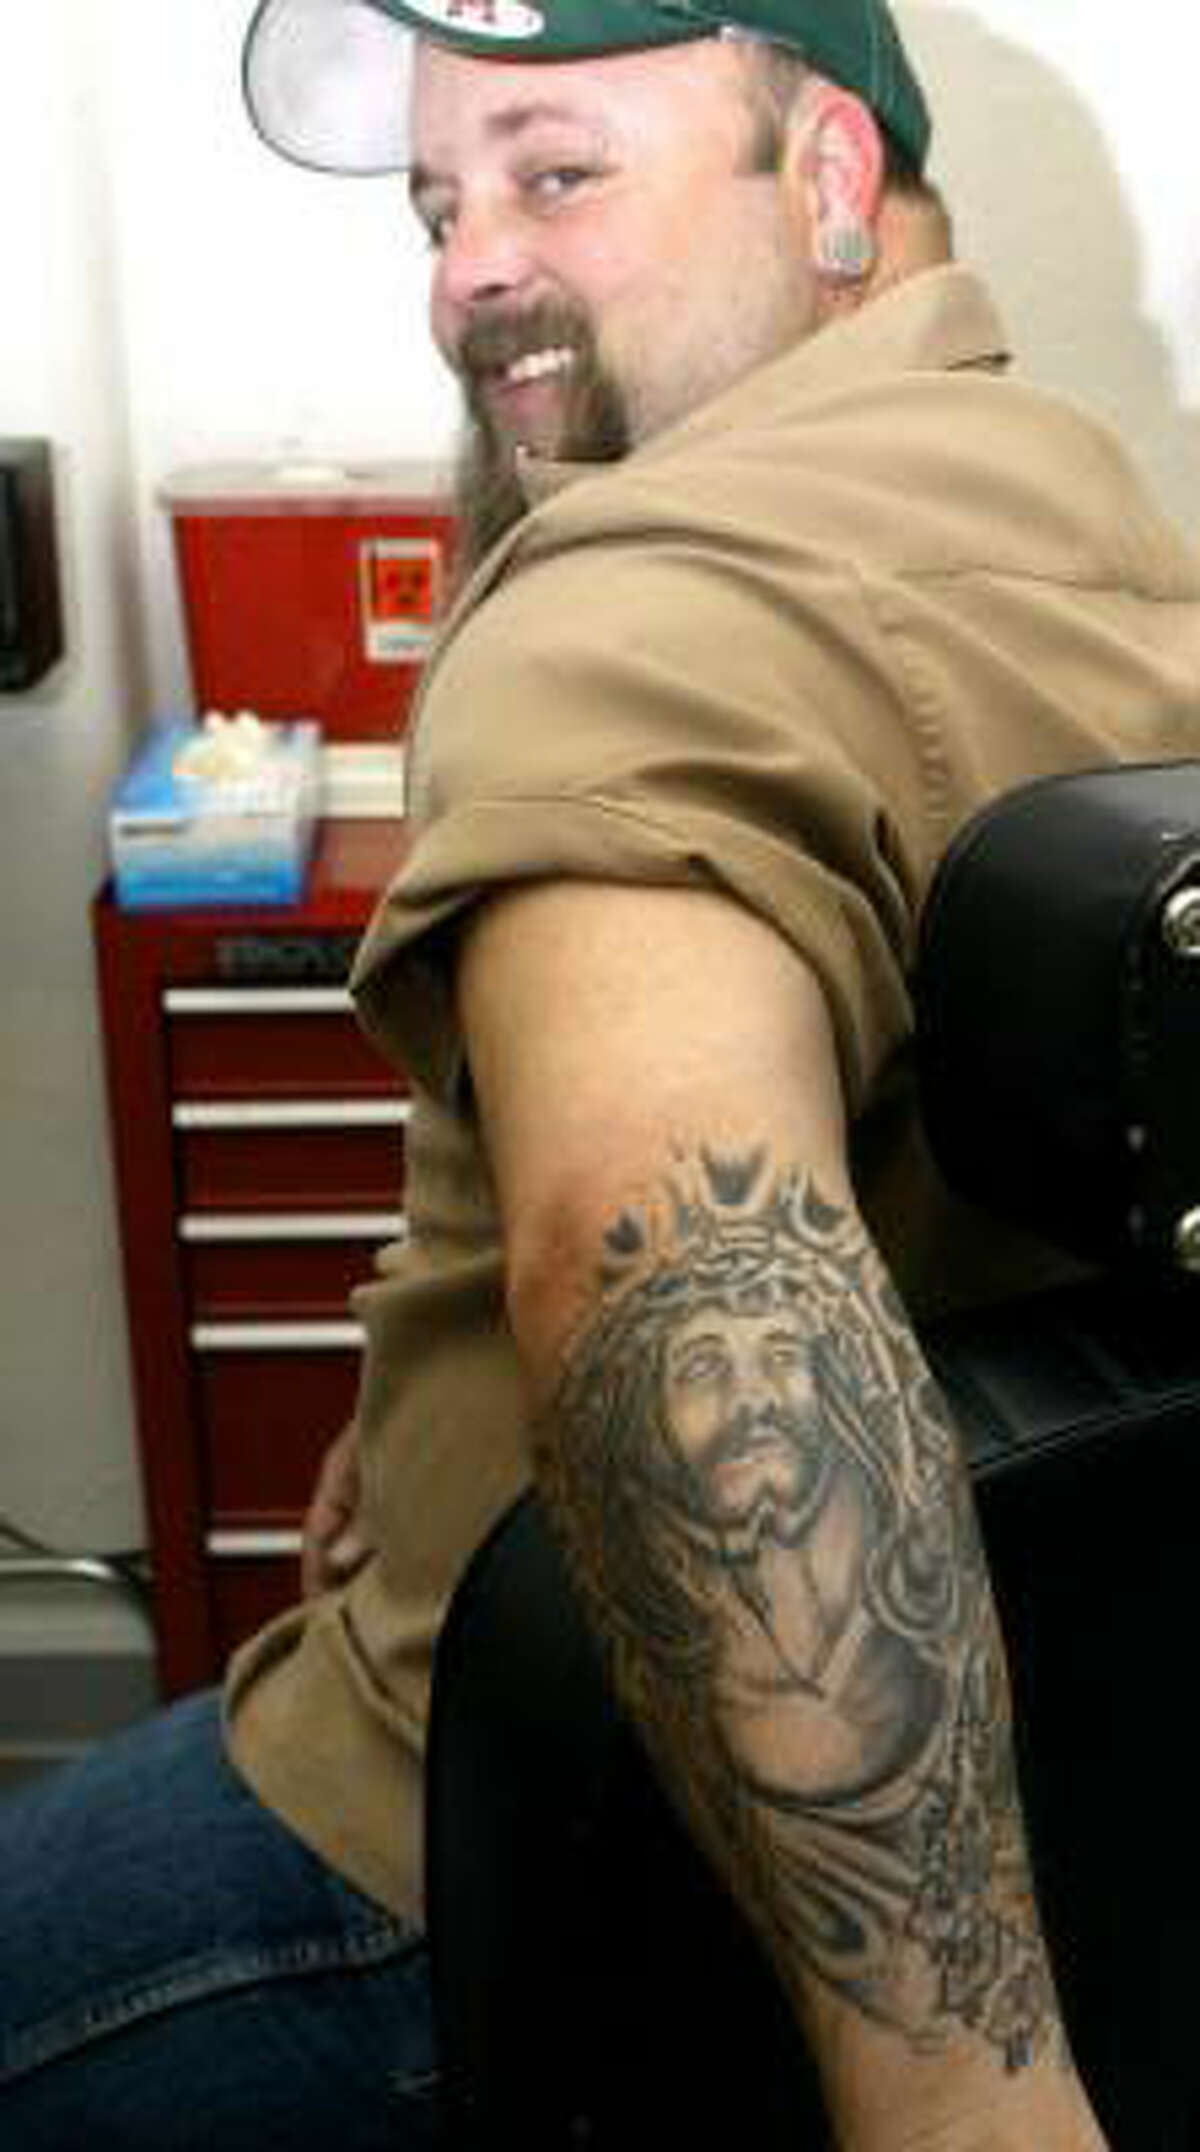 Another tattoo of Jesus. (AP)